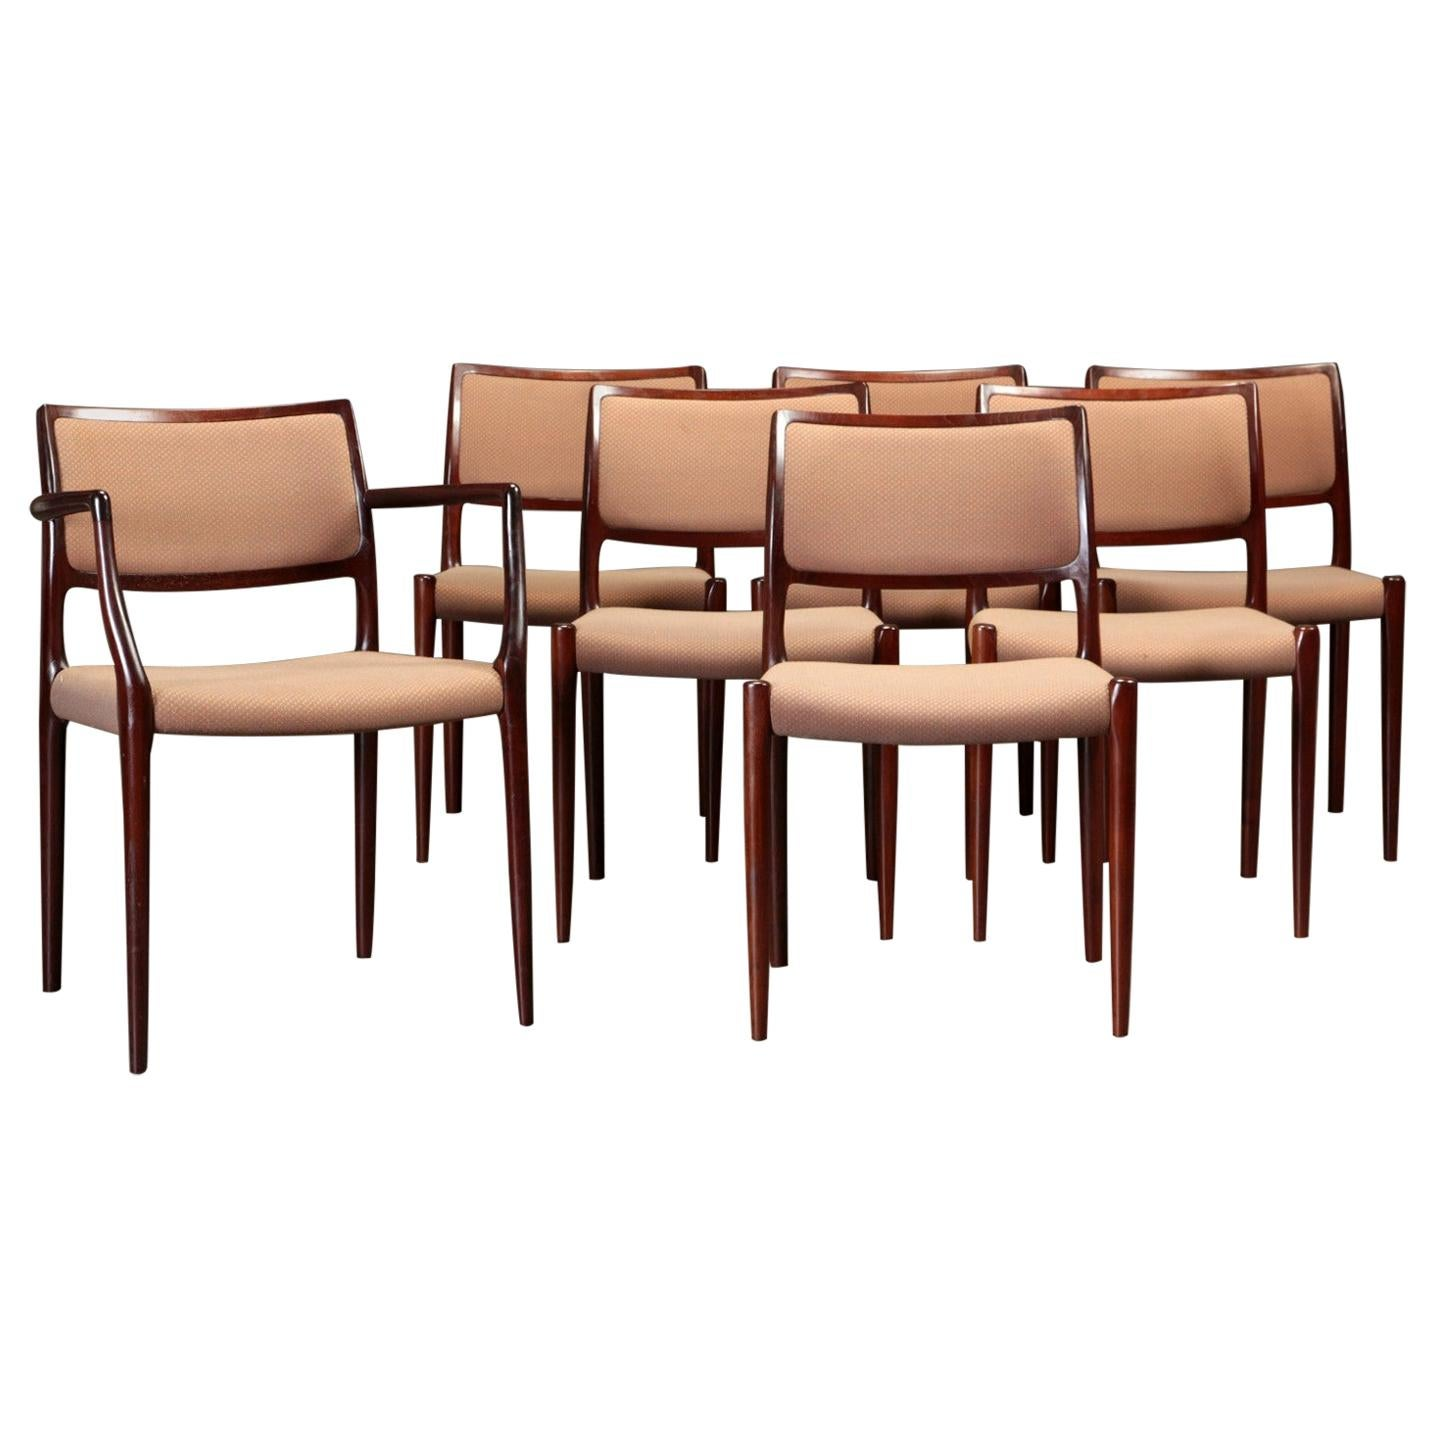 1960s Niels Otto Moller Set of Seven Dining Chairs in Mahogany Inc. Reupholstery